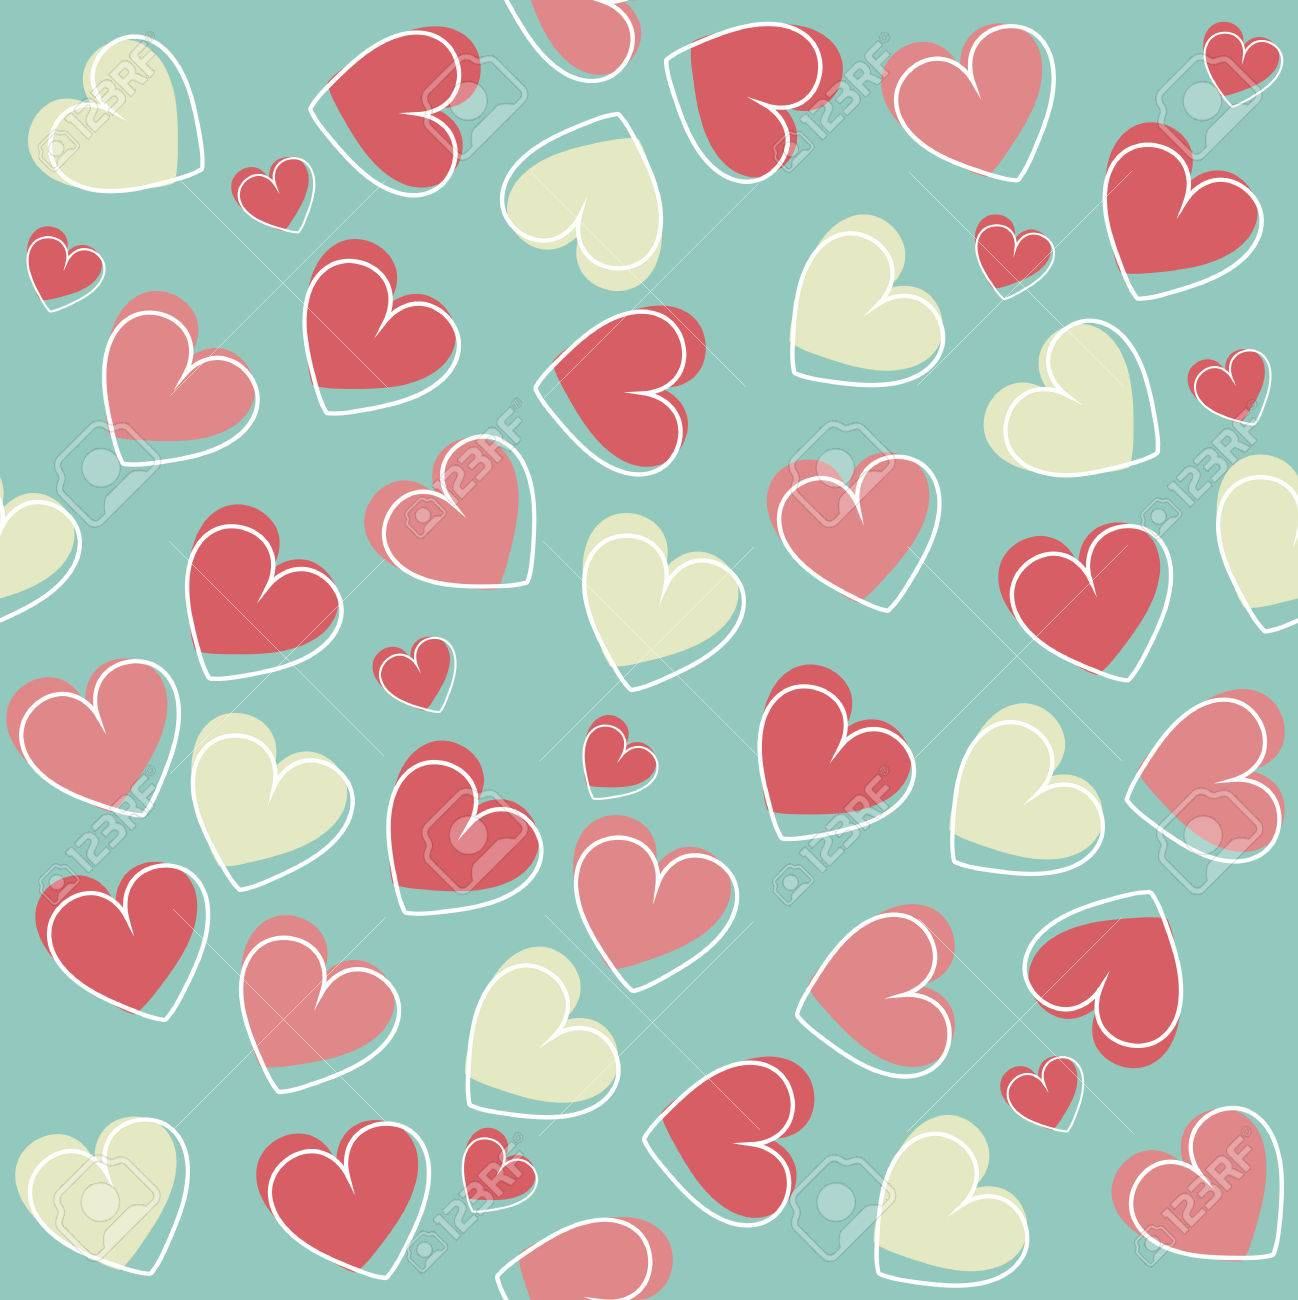 download Stylish Valentines Day Background Seamless Pattern